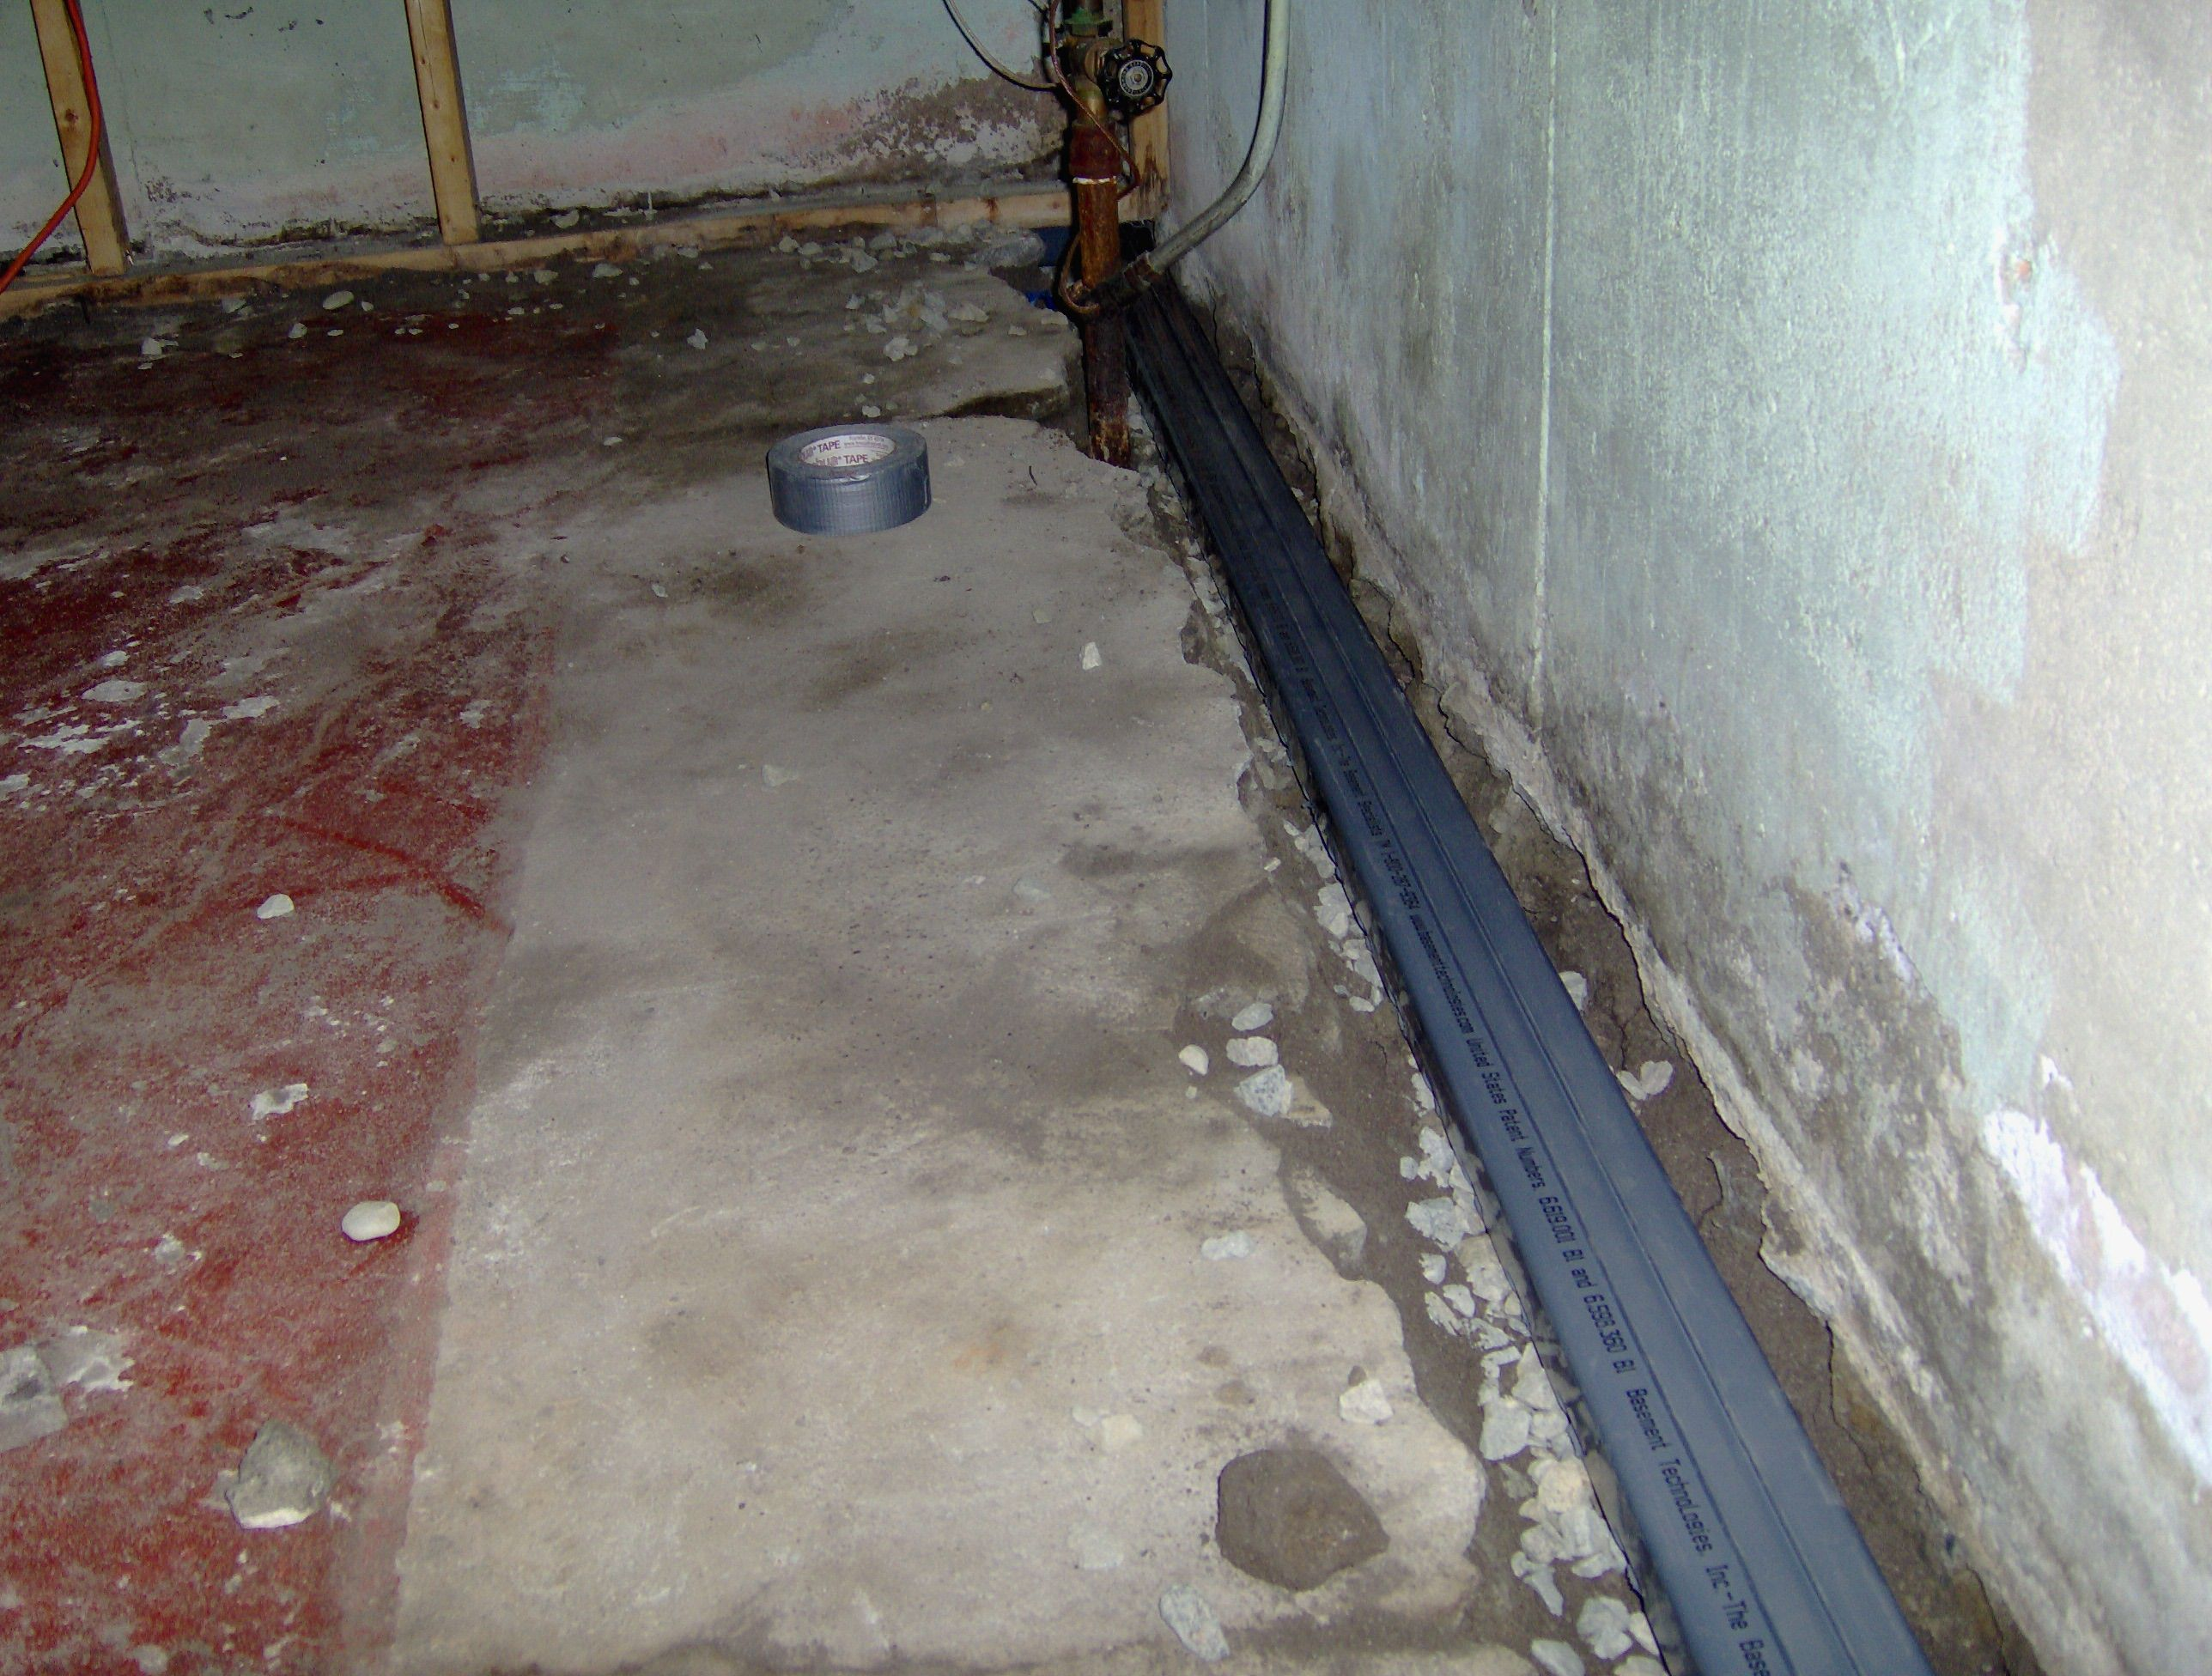 Water Trek Product Being Installed For More Basement Waterproofing Products Visit Www Basementtechnologies Com Installation Water Trek